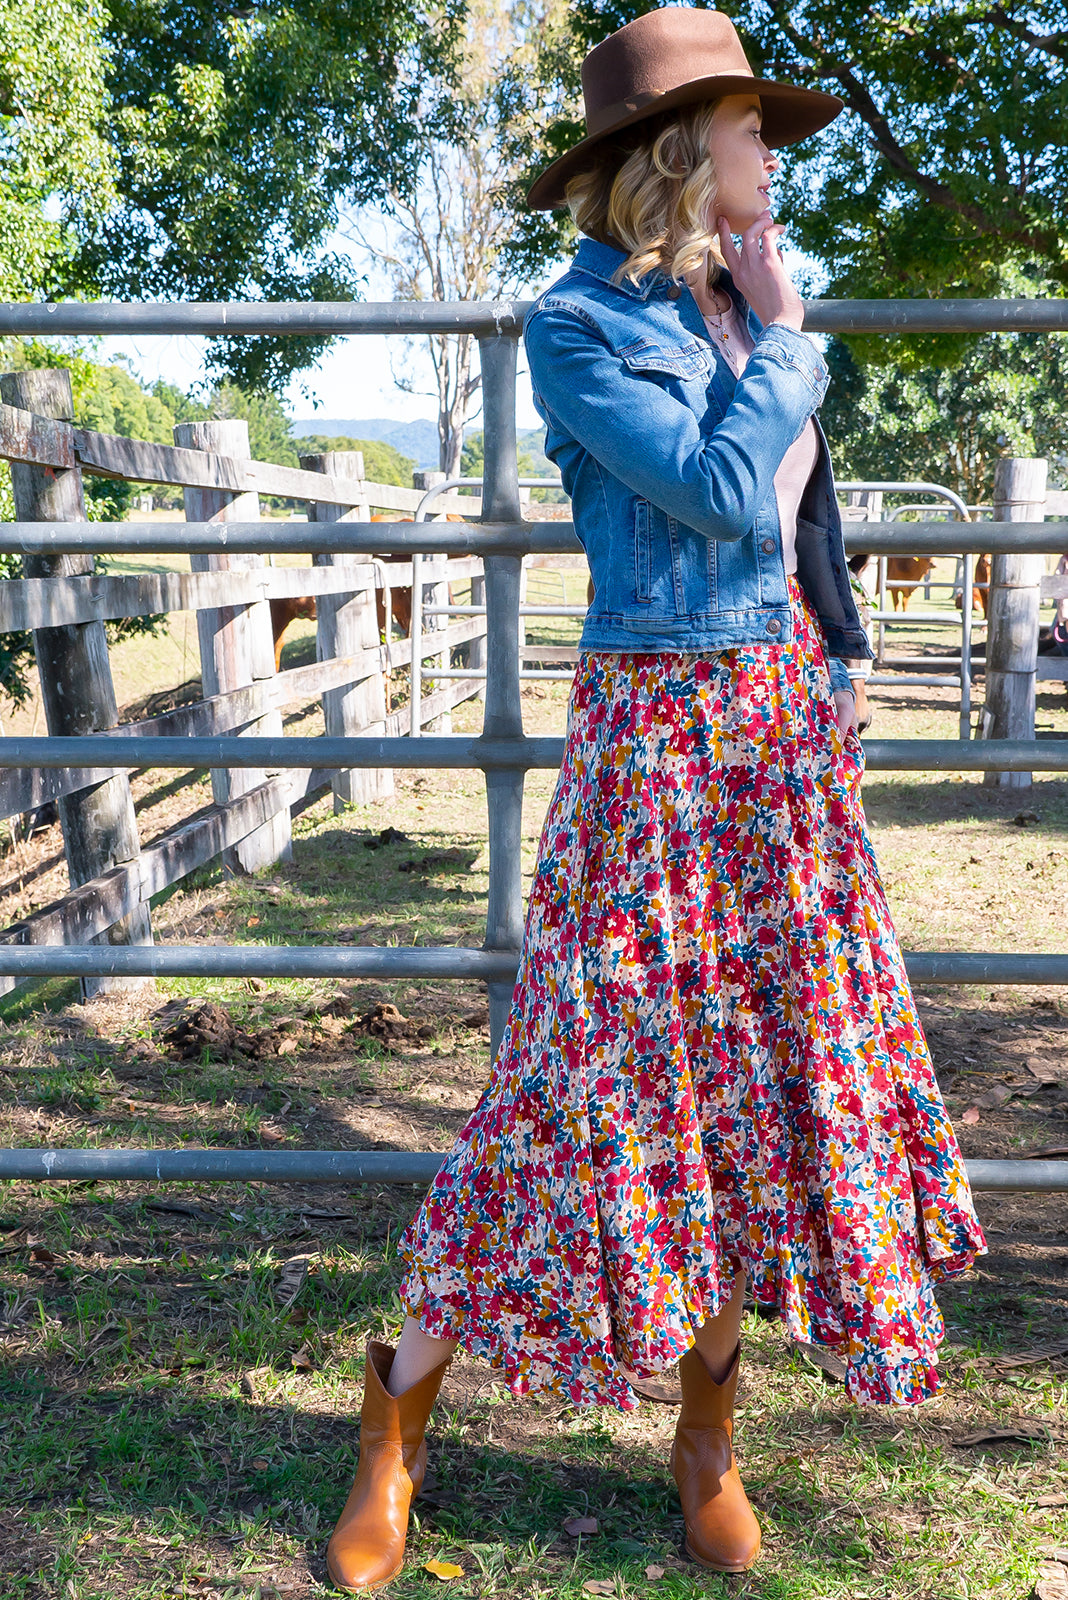 Narah Red Yves Maxi Skirt features elasticated waist, deep side pockets, waved/frill hemline and woven 100% rayon in vibrant multicoloured confetti floral print.